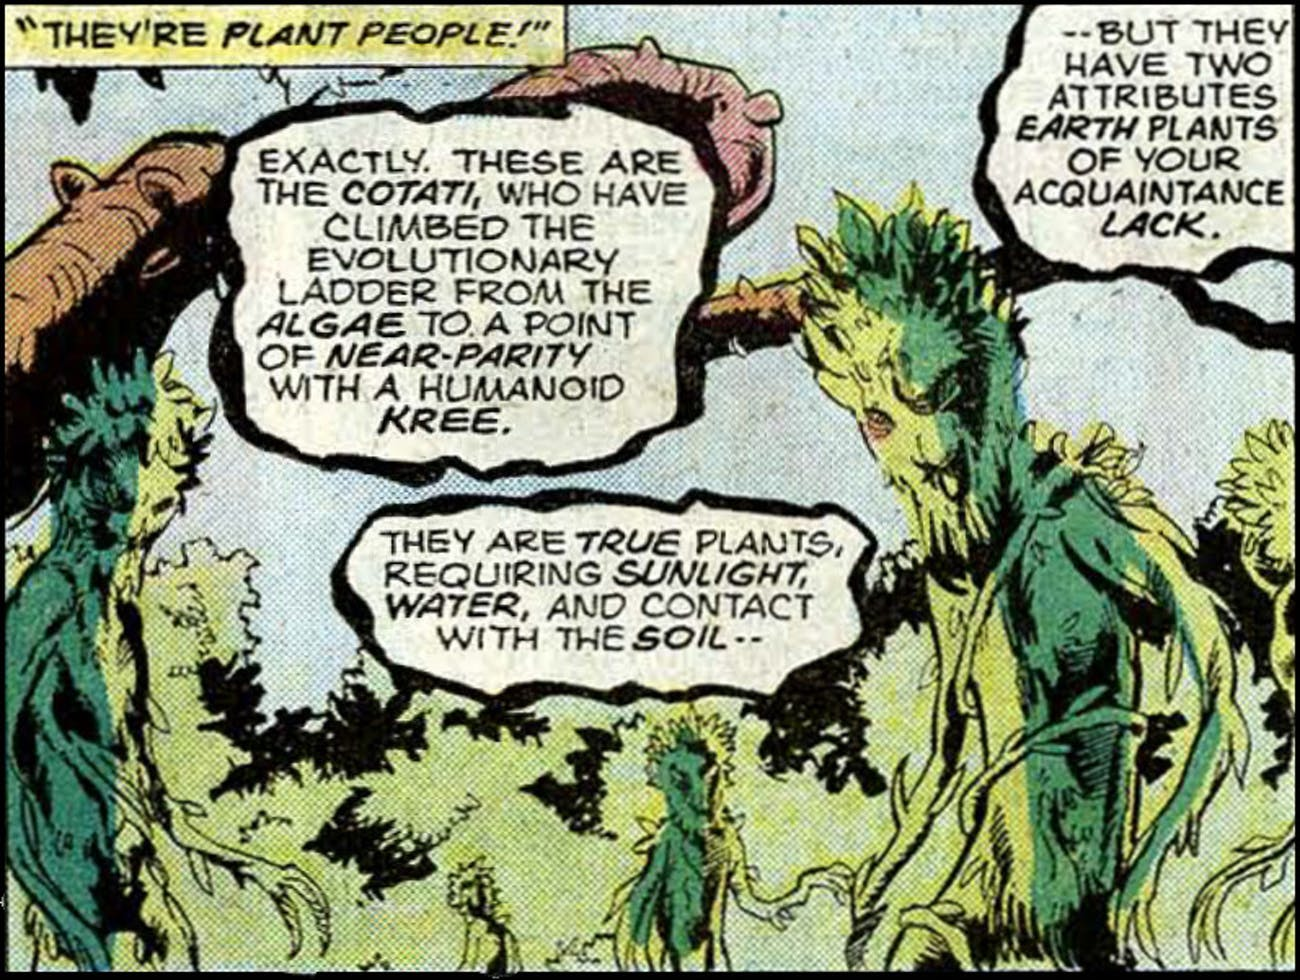 The Cotati are like Groot but shrubberyish and more eloquent.